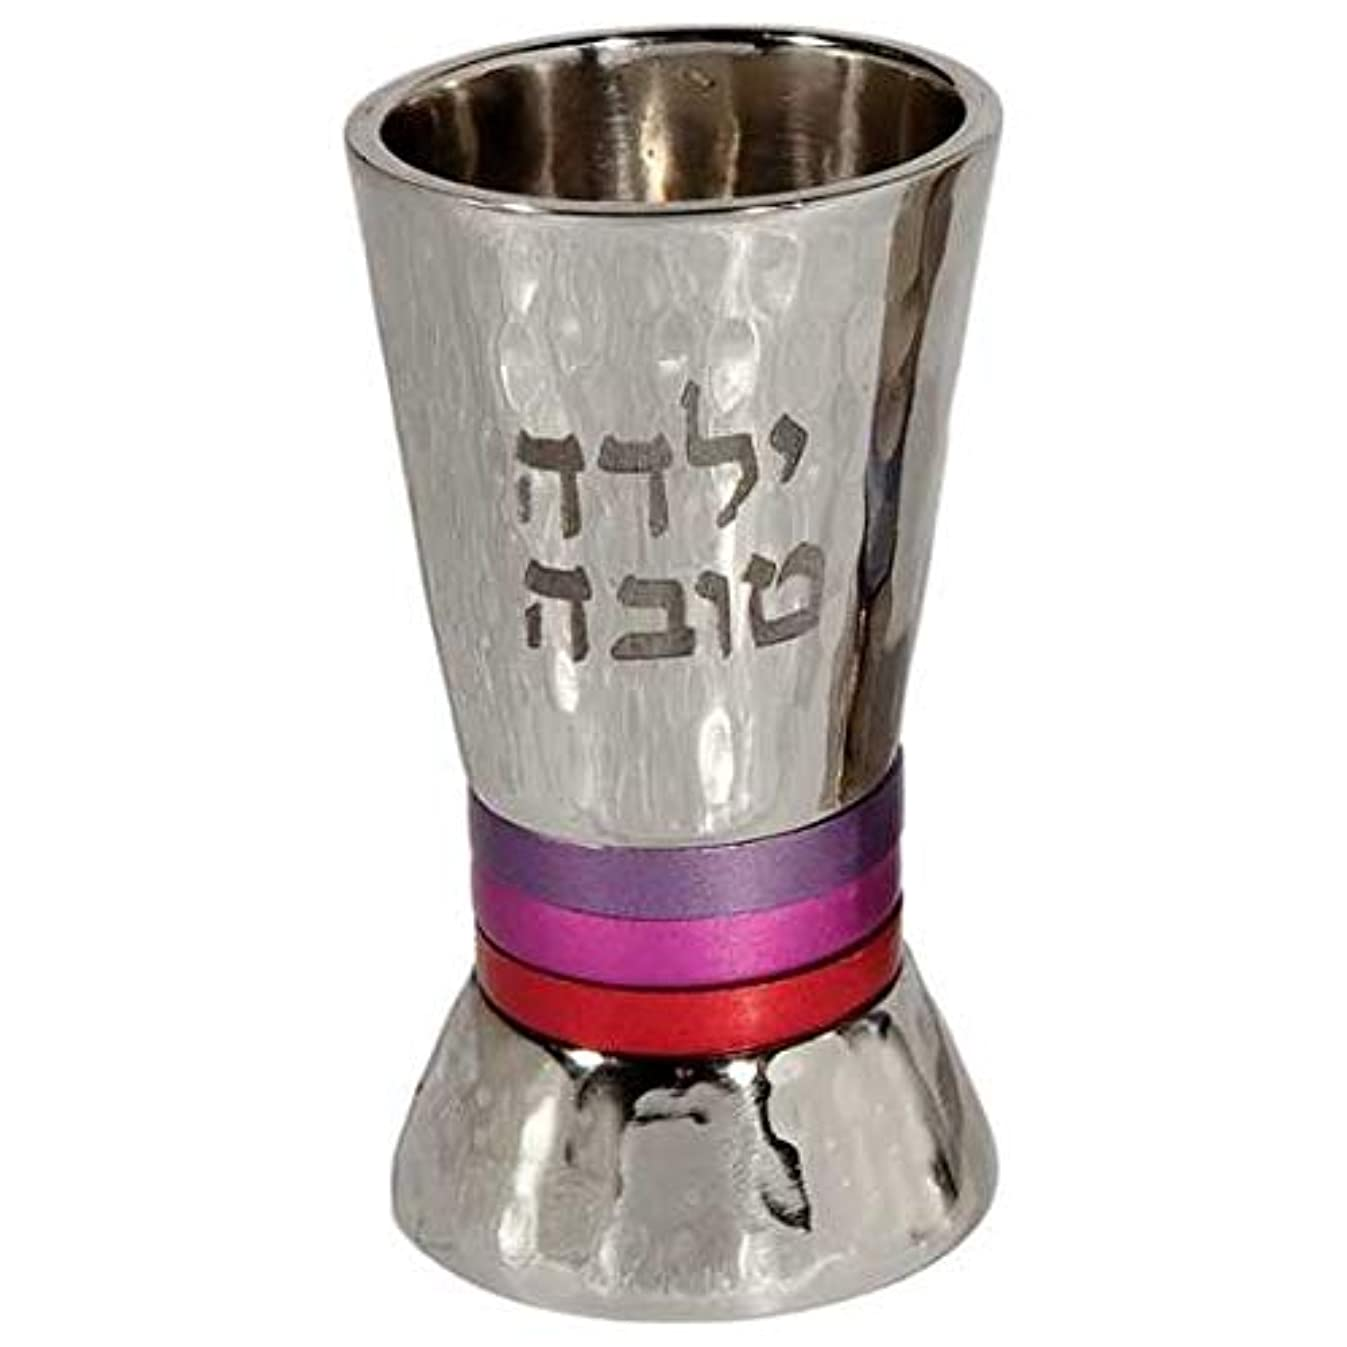 Yair Emanuel Hammered Nickel Girls' Kiddush Cup | Yalda Tova - Good Girl | Silver Color with Shades of Pink and Red Rings (YTO-2)